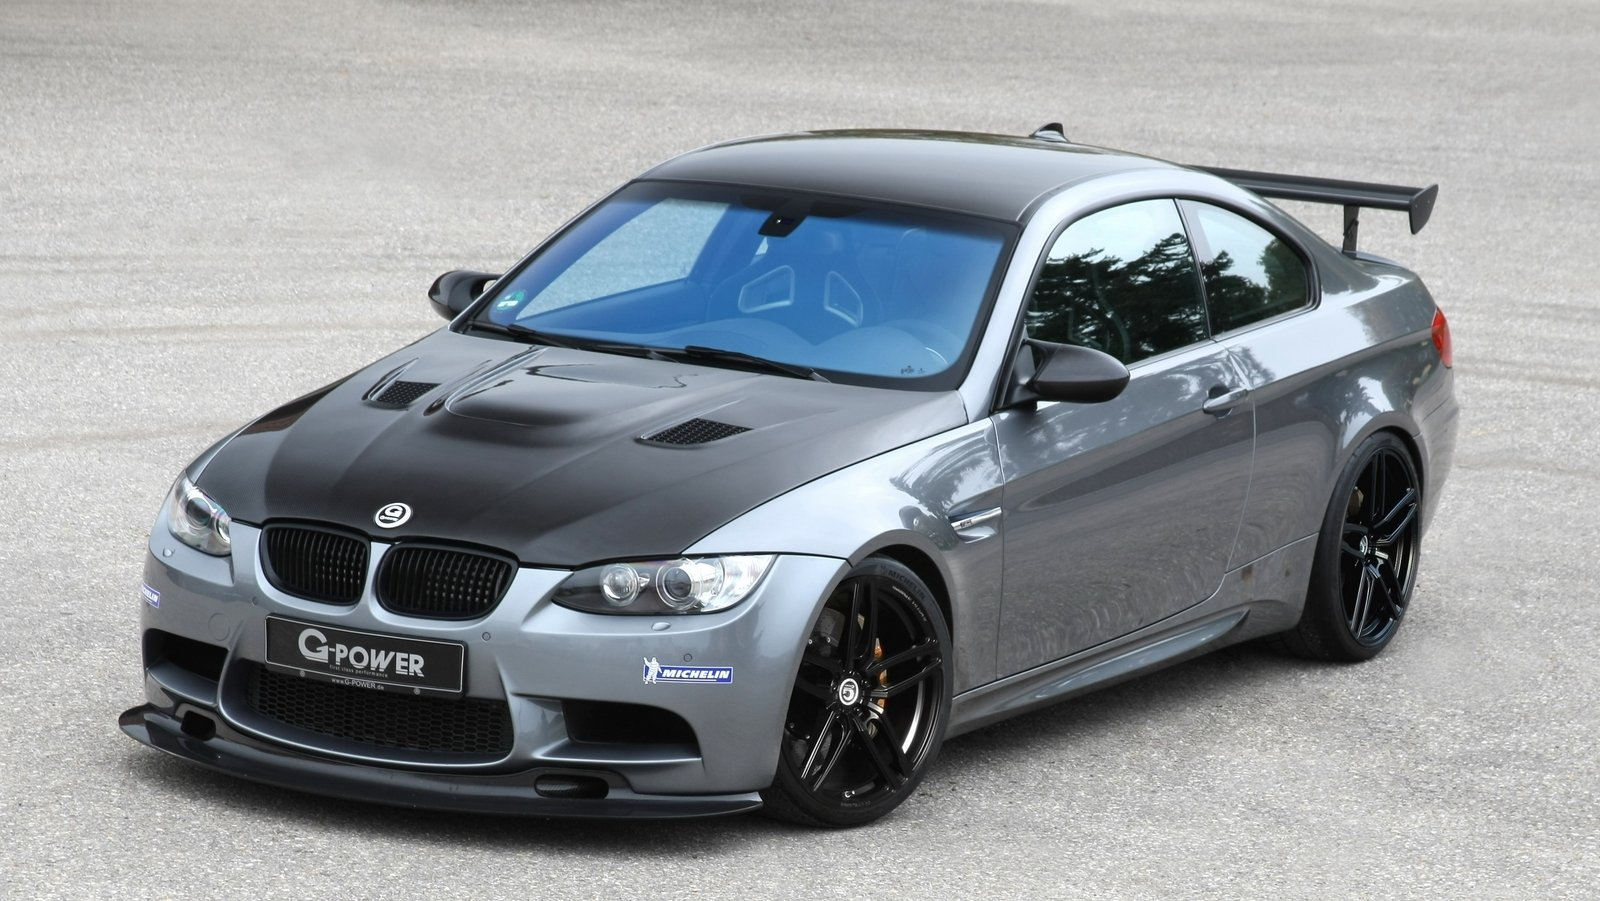 Fastest Car In The World Wallpaper 2015 2016 Bmw M3 Rs E9x By G Power Review Top Speed